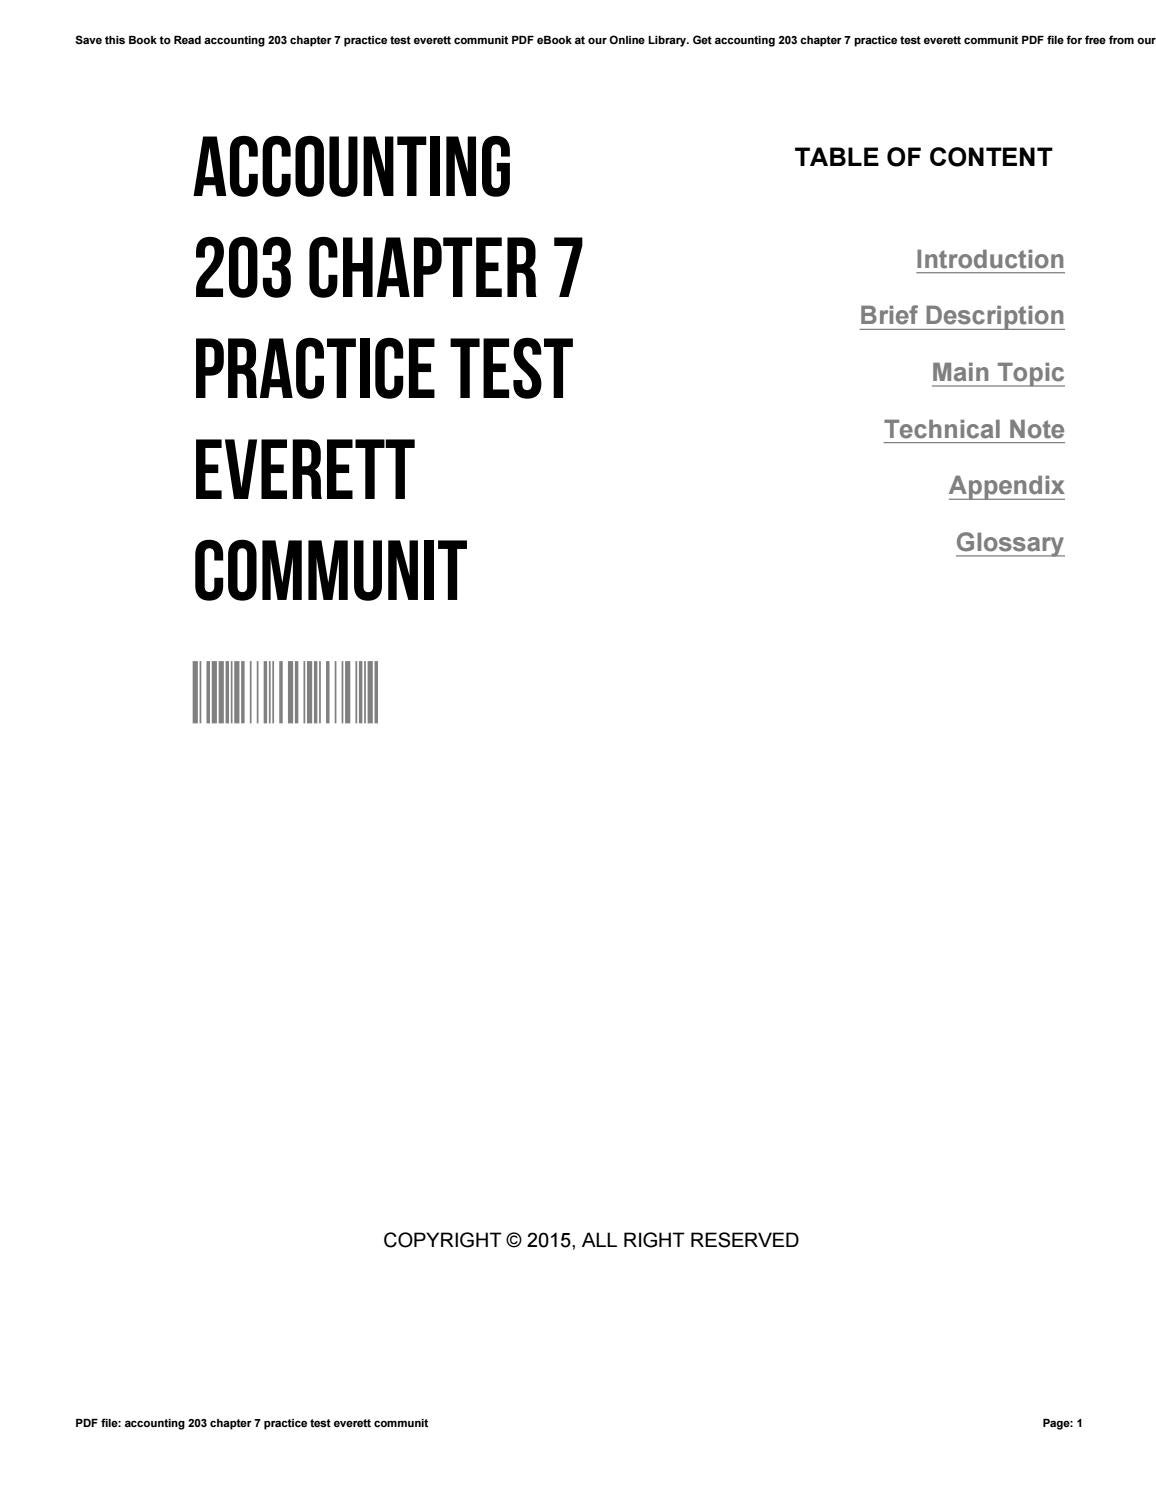 Accounting 203 chapter 7 practice test everett communit by